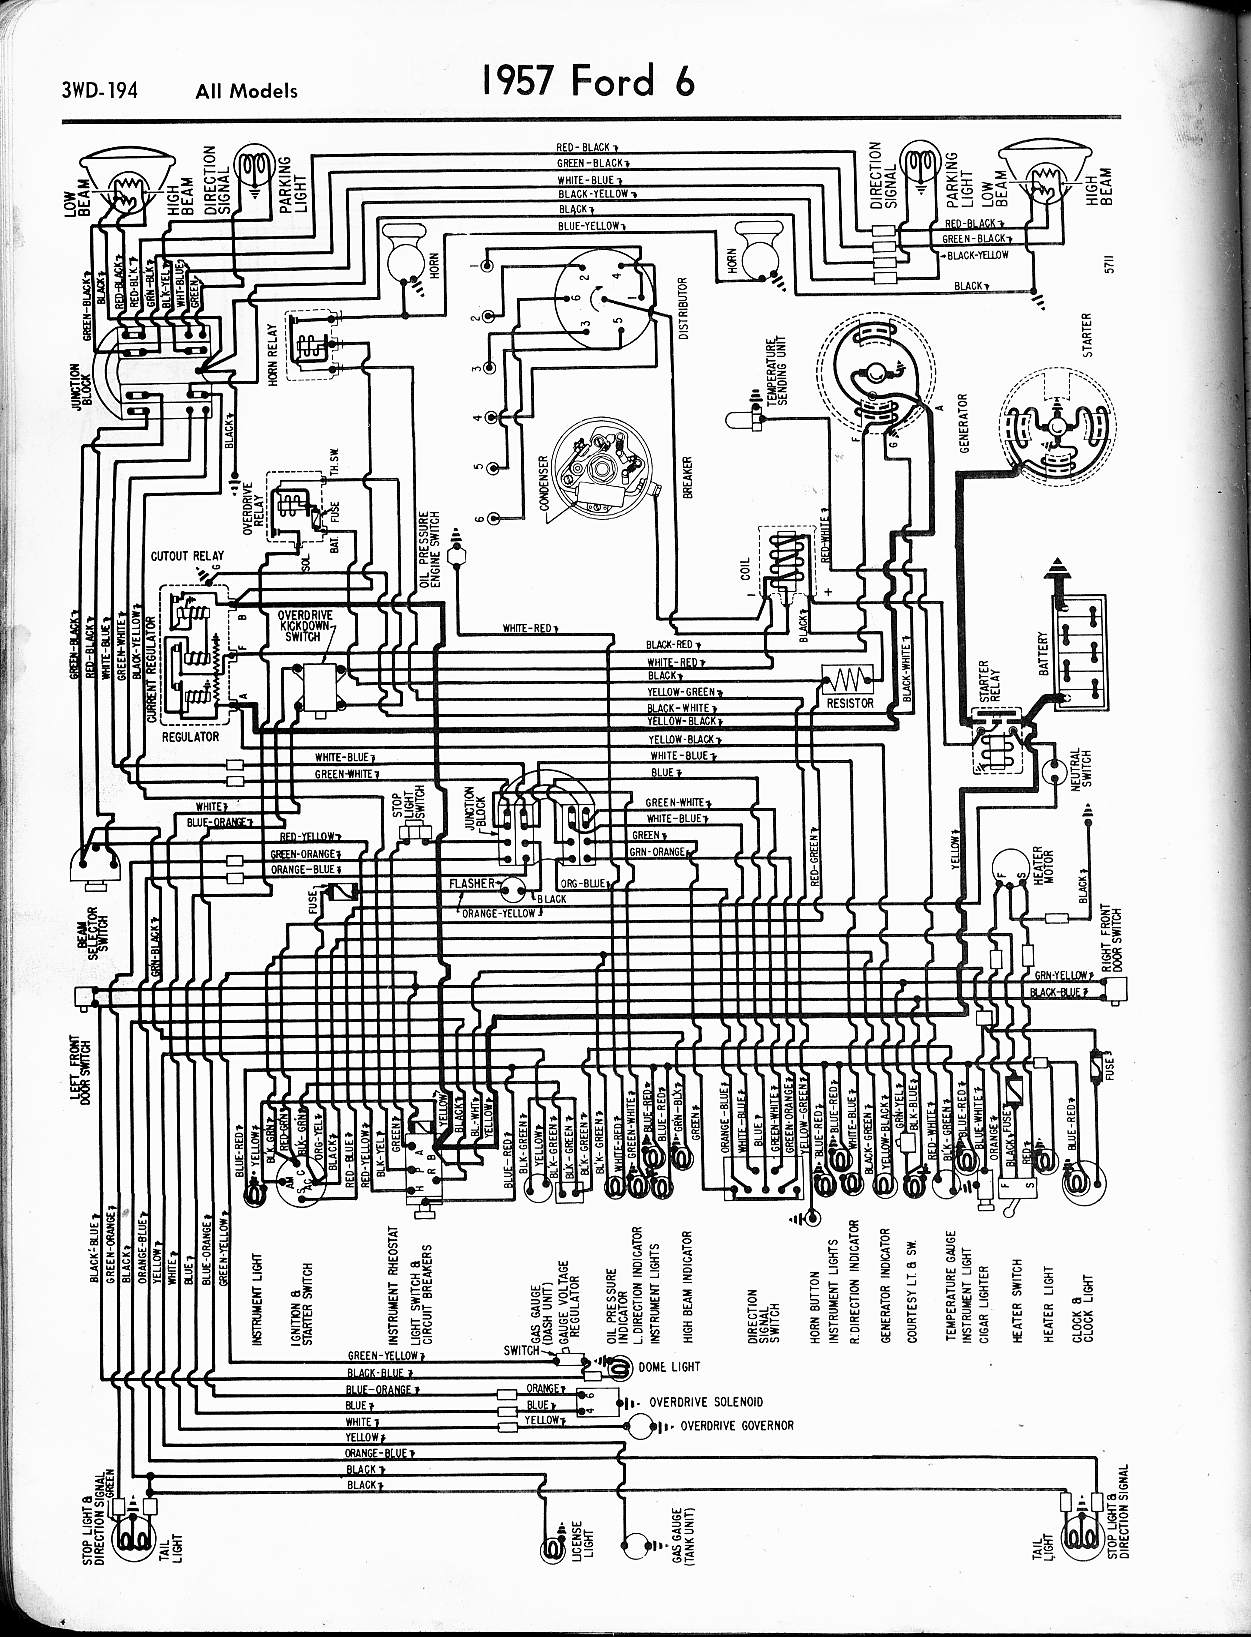 57 65 Ford Wiring Diagrams 2002 Ford F350 Wiring Diagram F350 Wiring Diagram